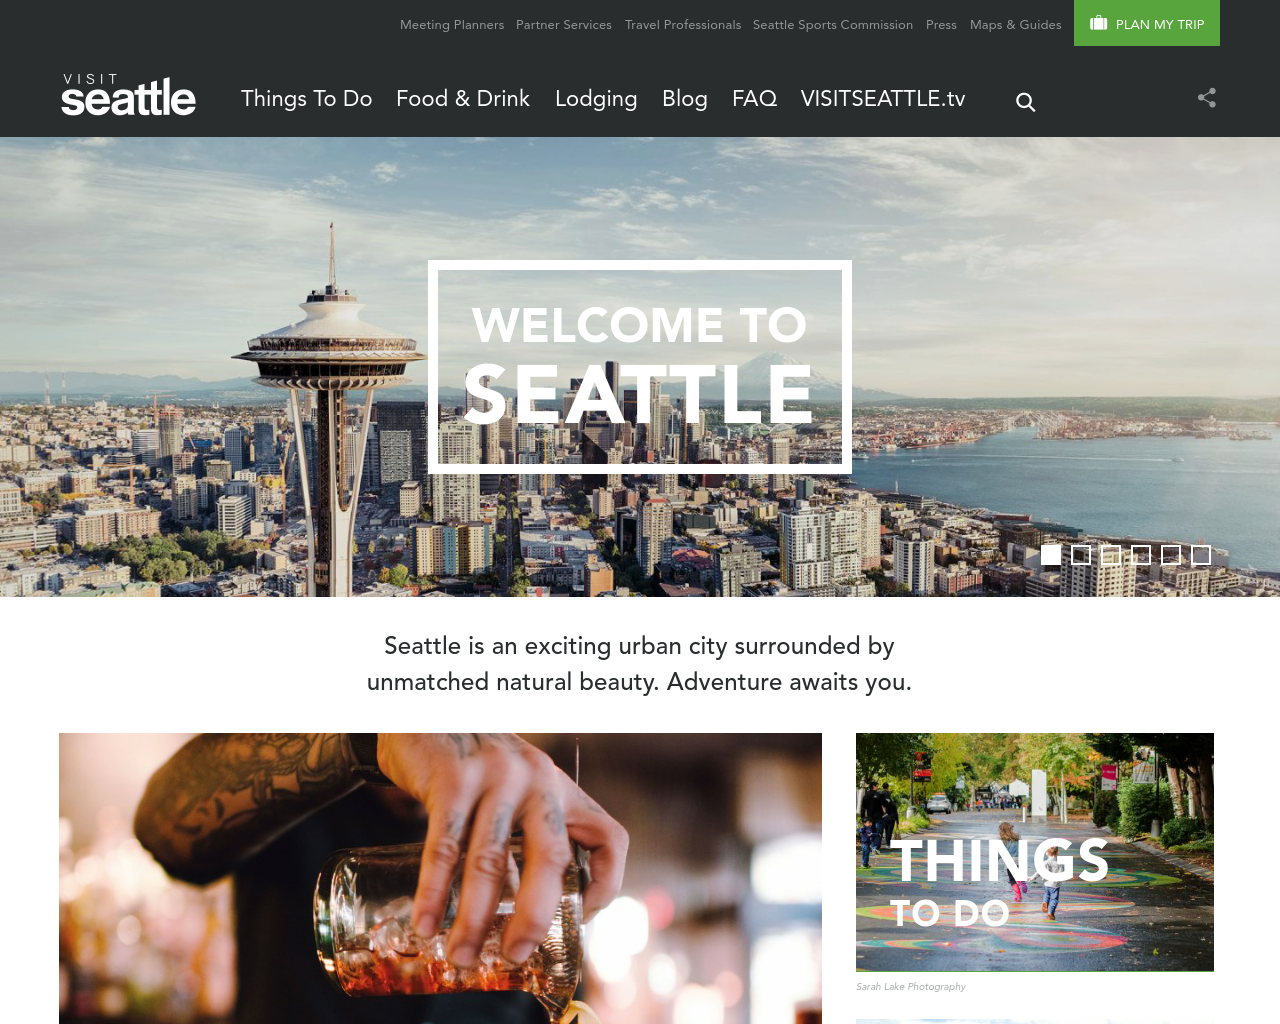 Visit-seattle-Advertising-Reviews-Pricing